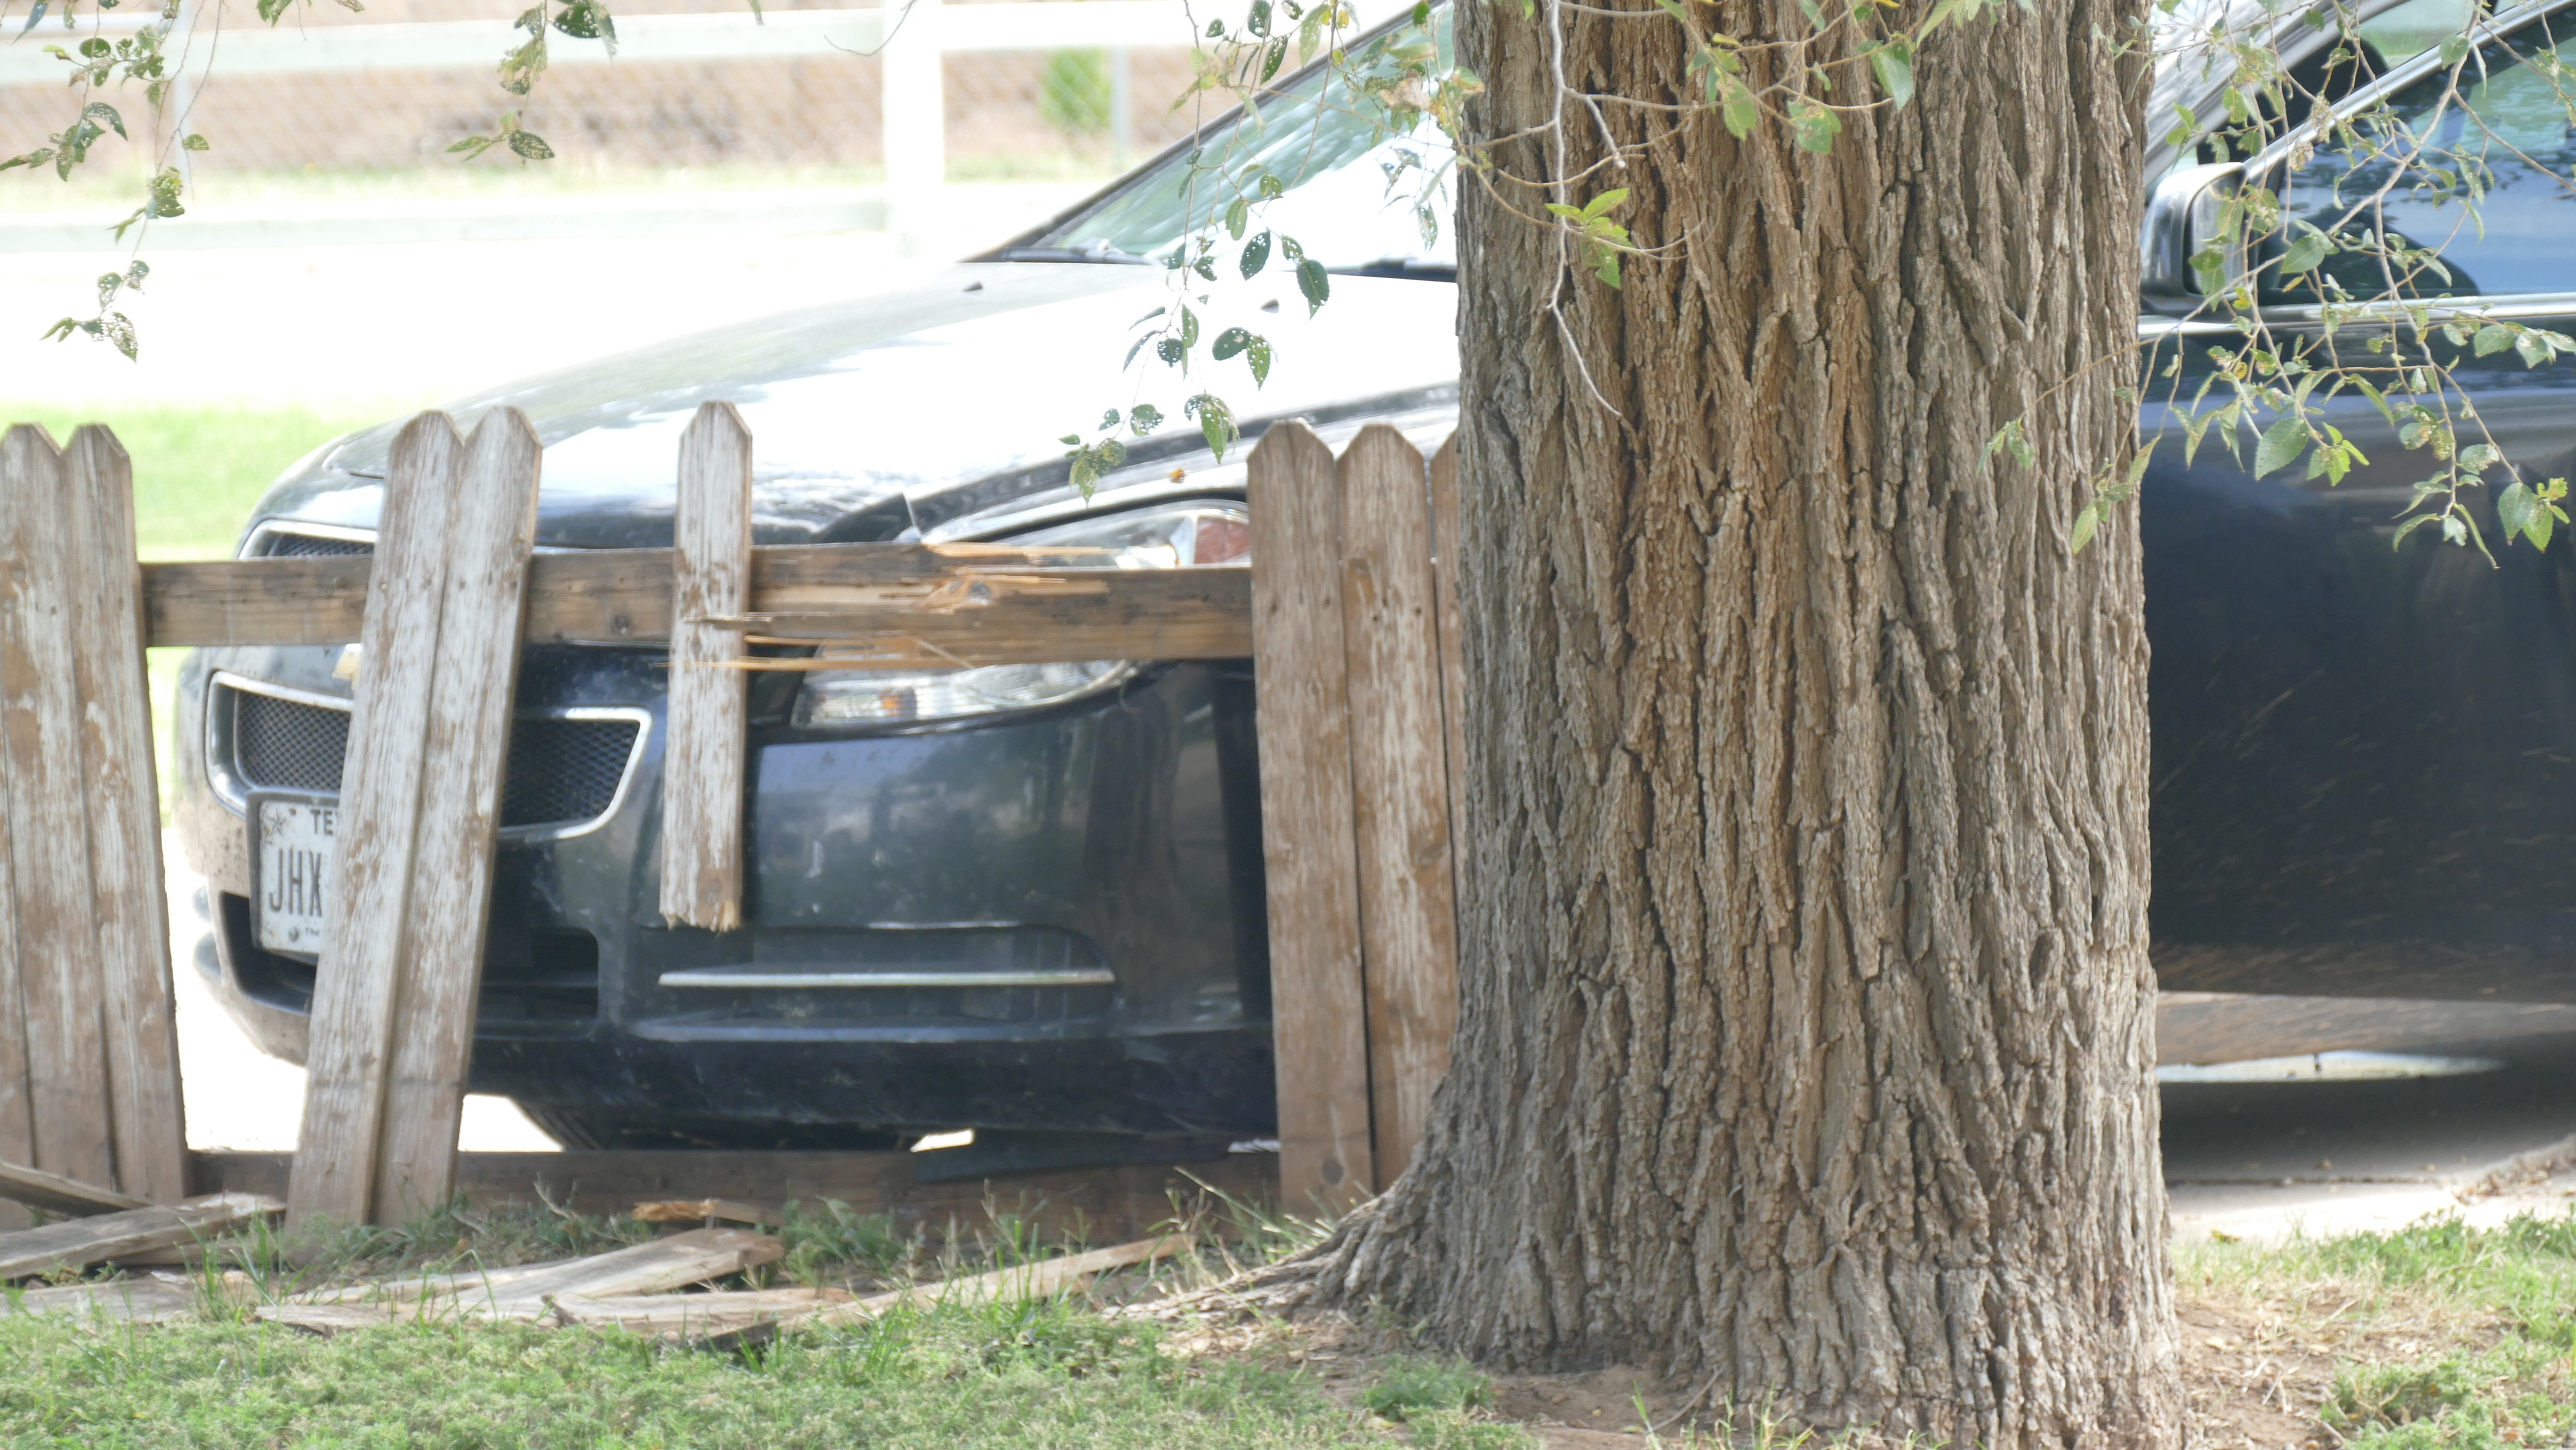 Amarillo police are searching for a woman after she tried to evade police, crashed a vehicle into a fence and fled on foot. (ABC 7 Amarillo - Steve Douglass)